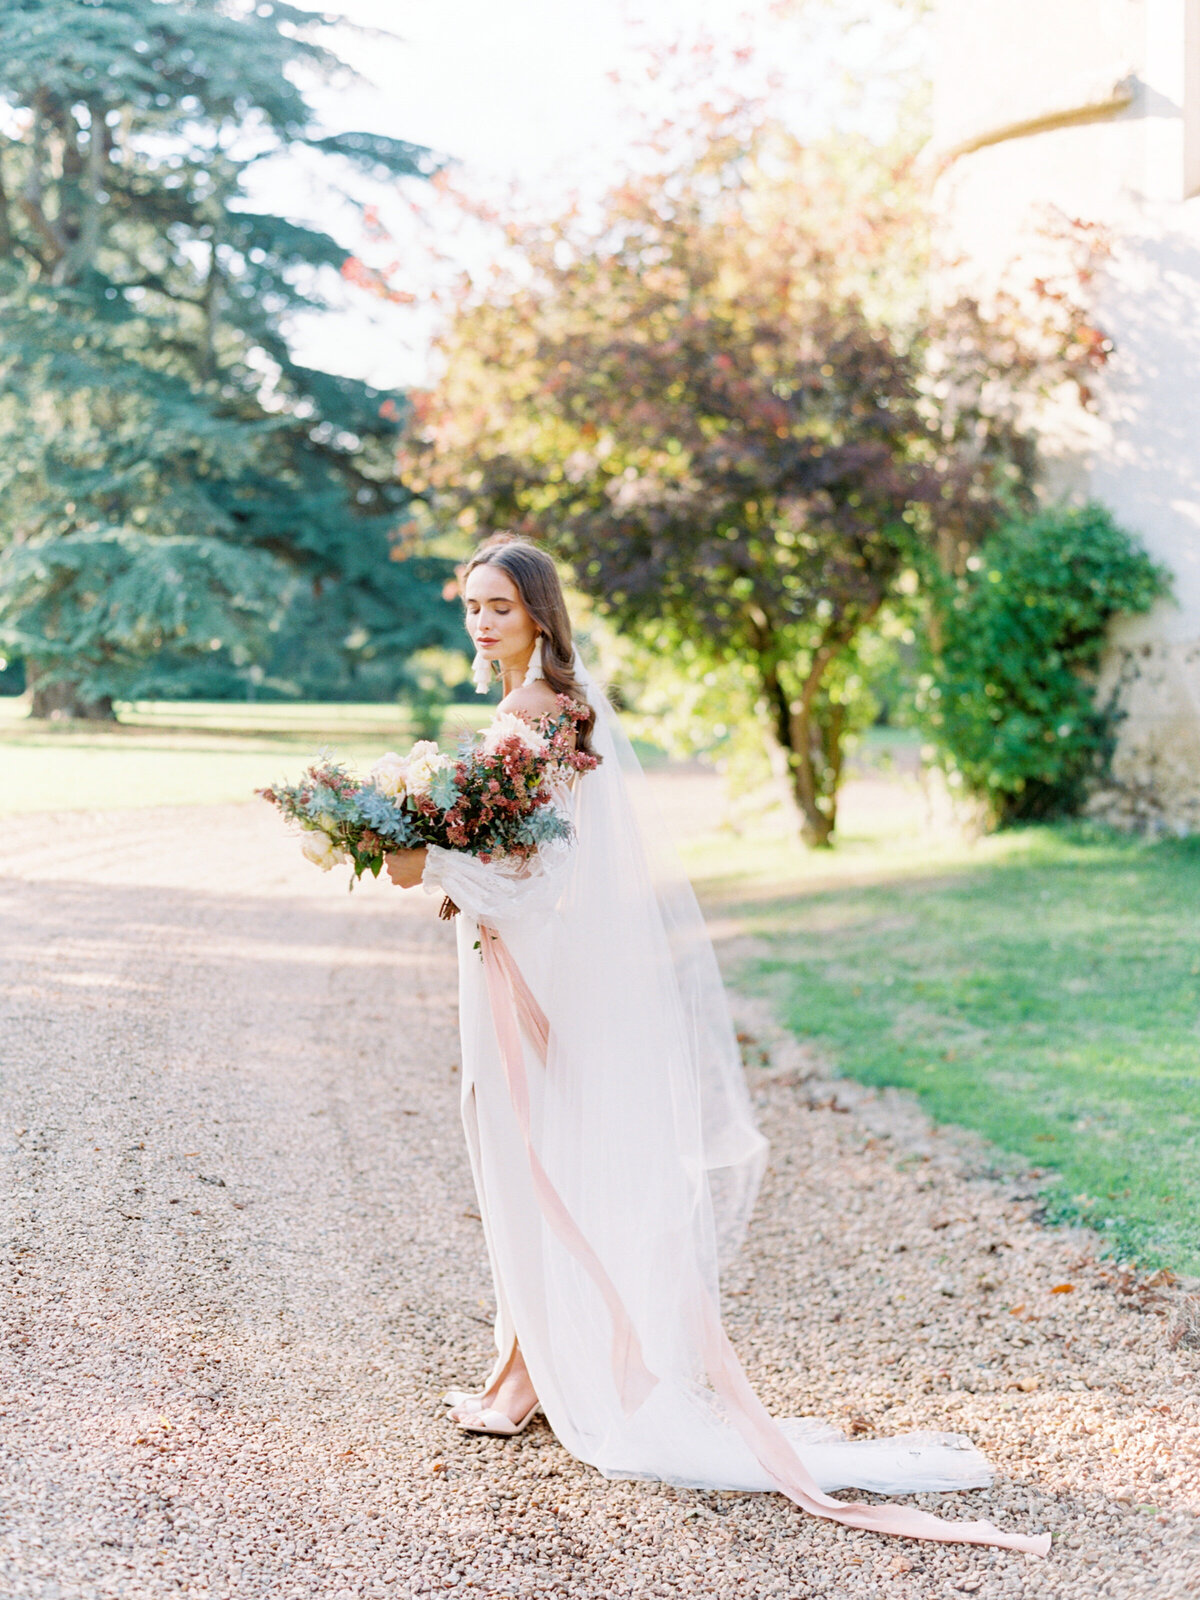 chateau-bouthonvilliers-wedding-paris-wedding-photographer-mackenzie-reiter-photography-45